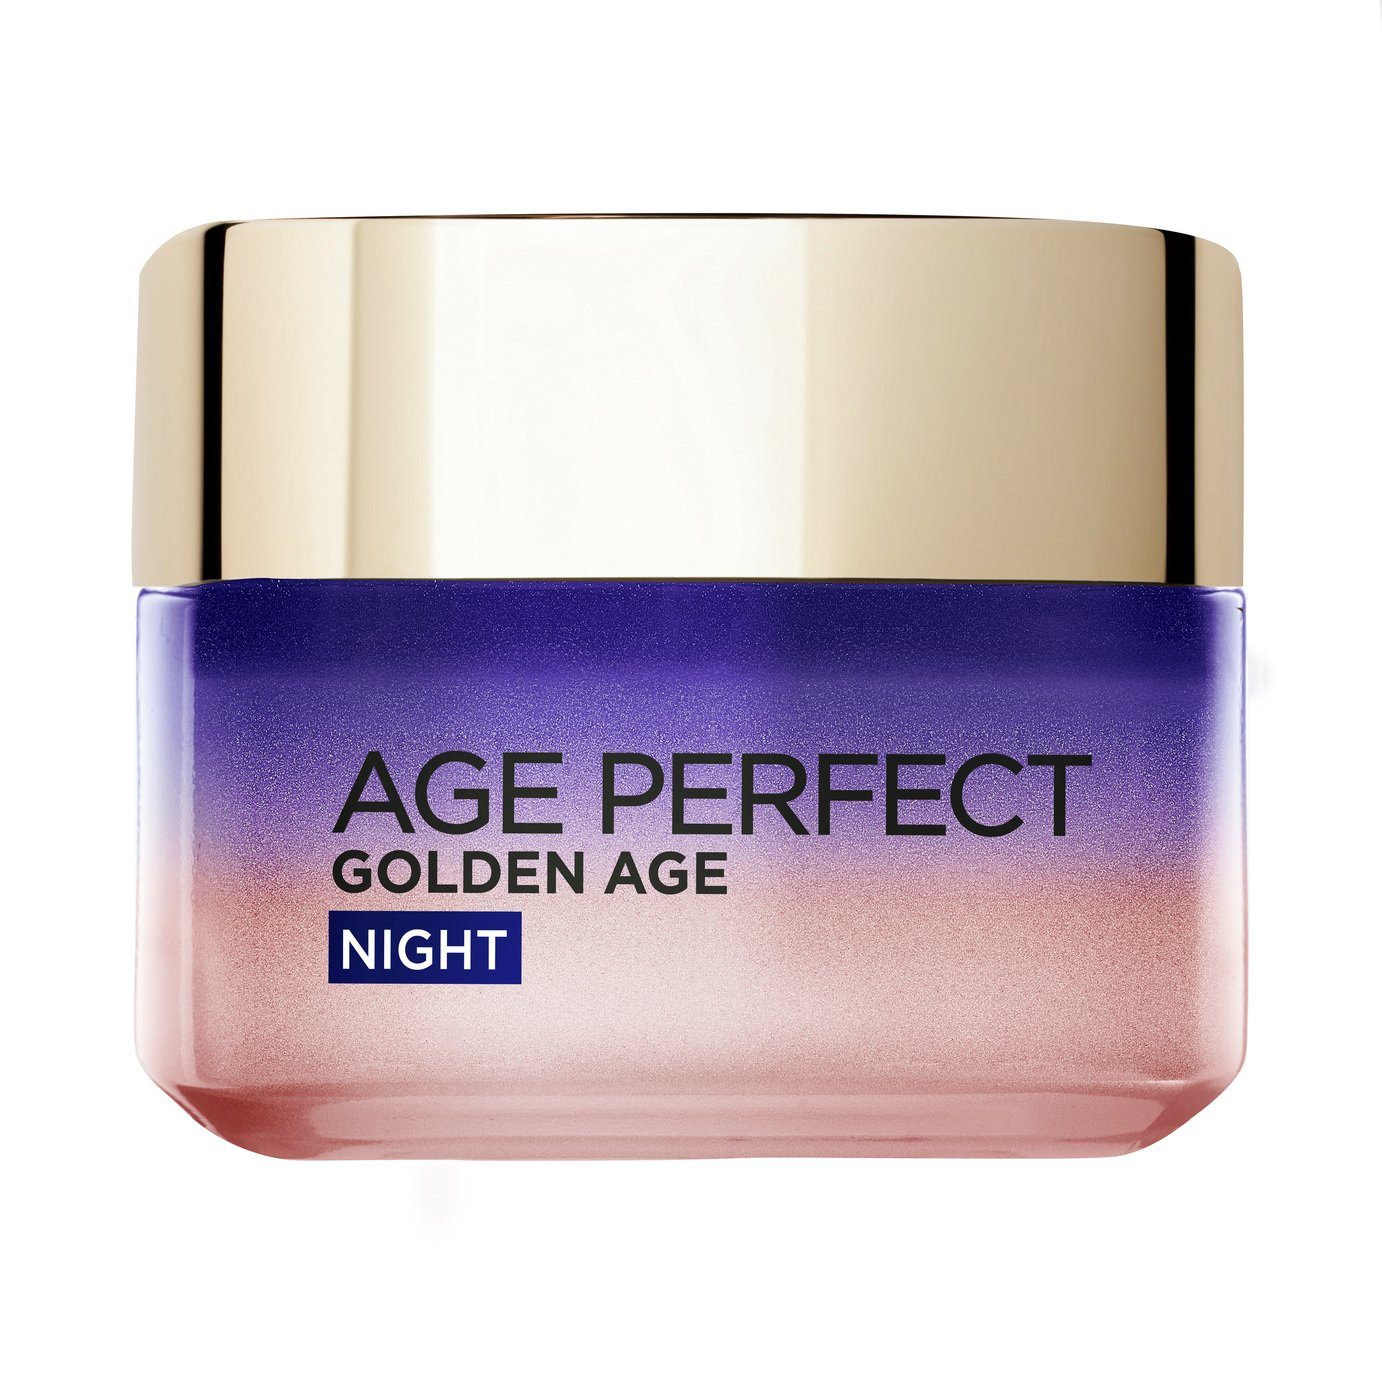 L'Oreal Paris Skin Age Perfect Golden Age Night Pot - 50ml